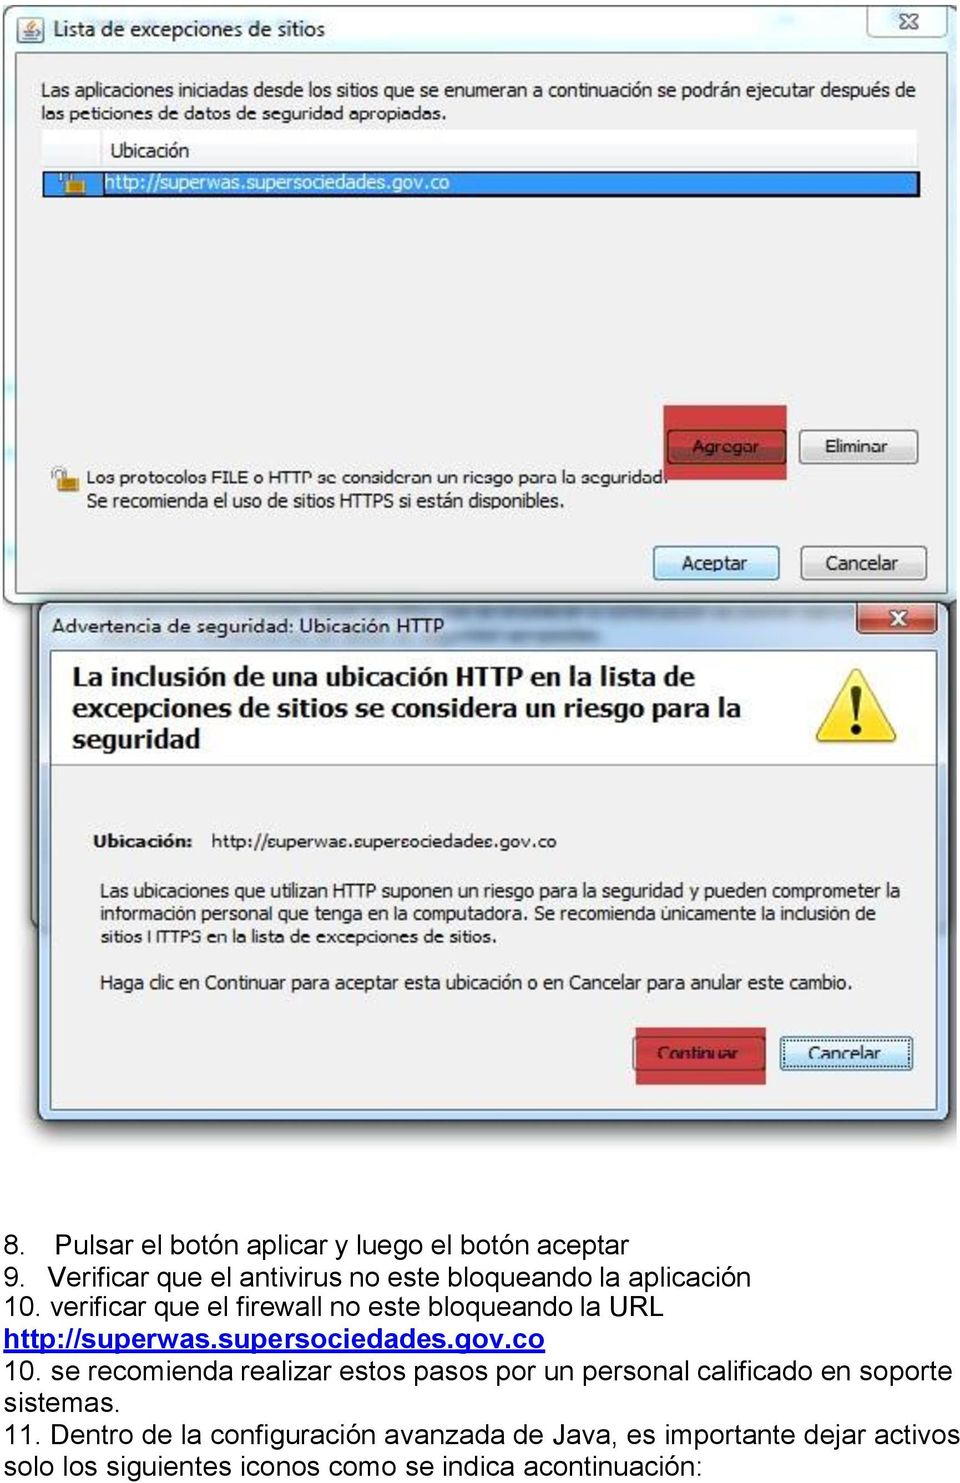 verificar que el firewall no este bloqueando la URL http://superwas.supersociedades.gov.co 10.